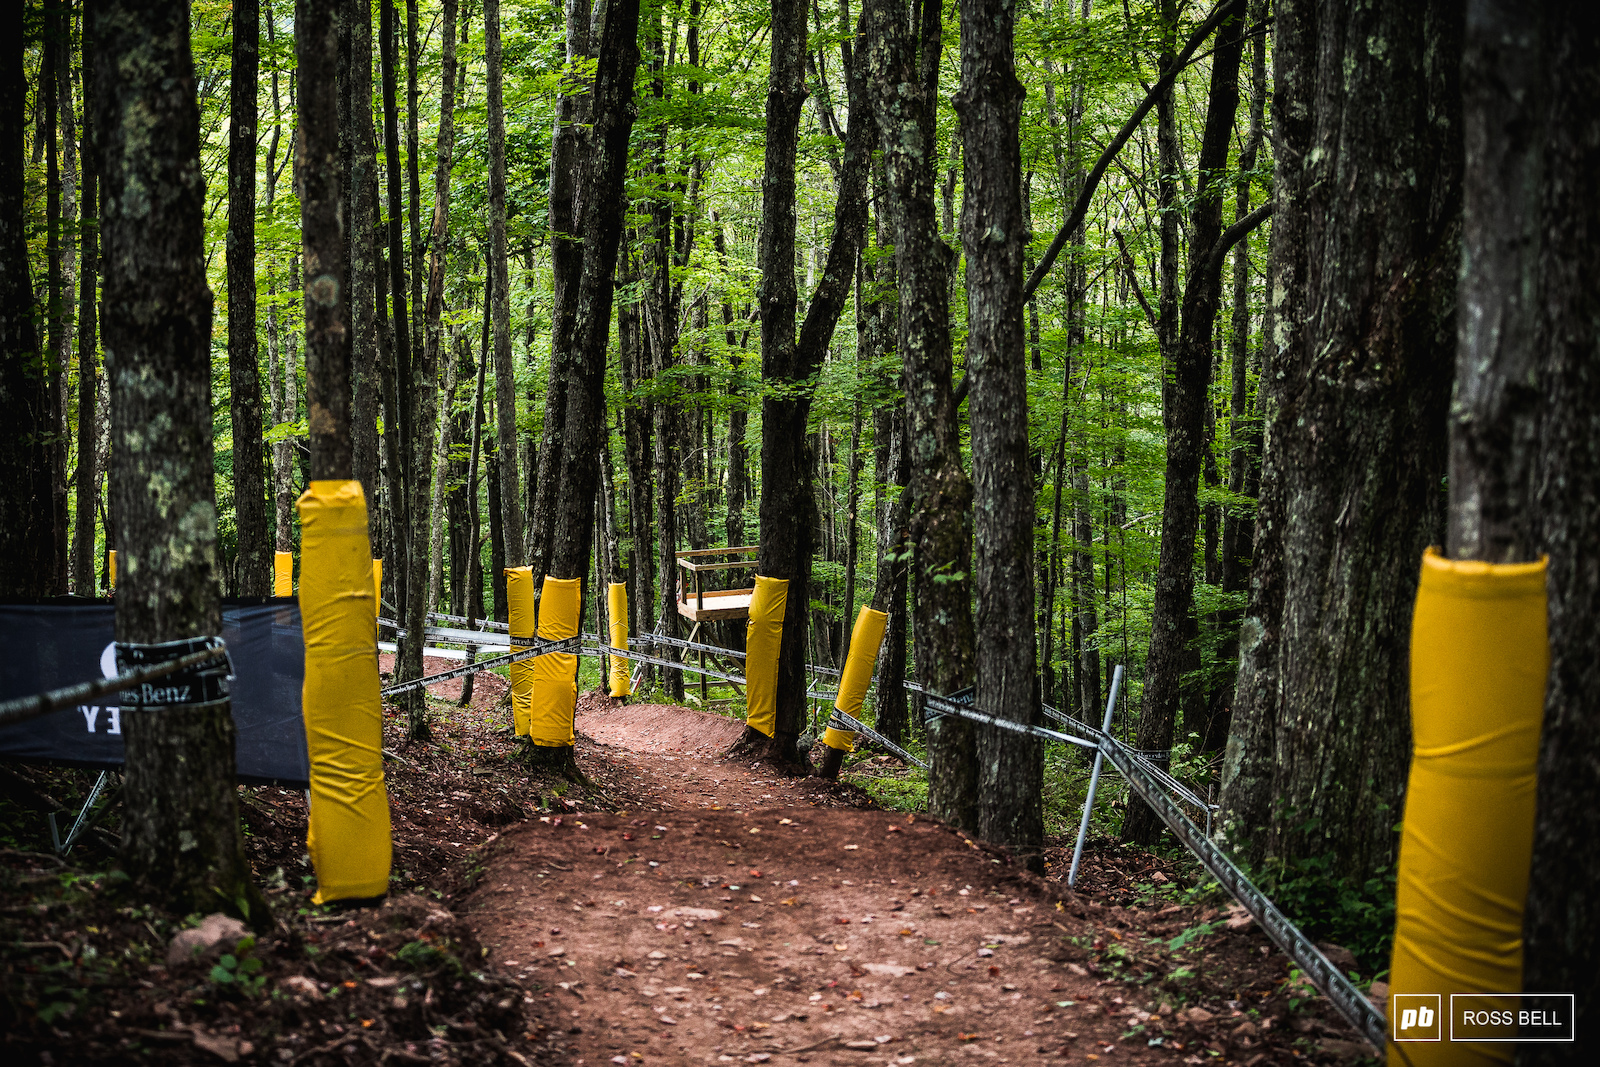 The final section of track will be a leg and lung burner as riders pump and pedal their way towards the finish line.